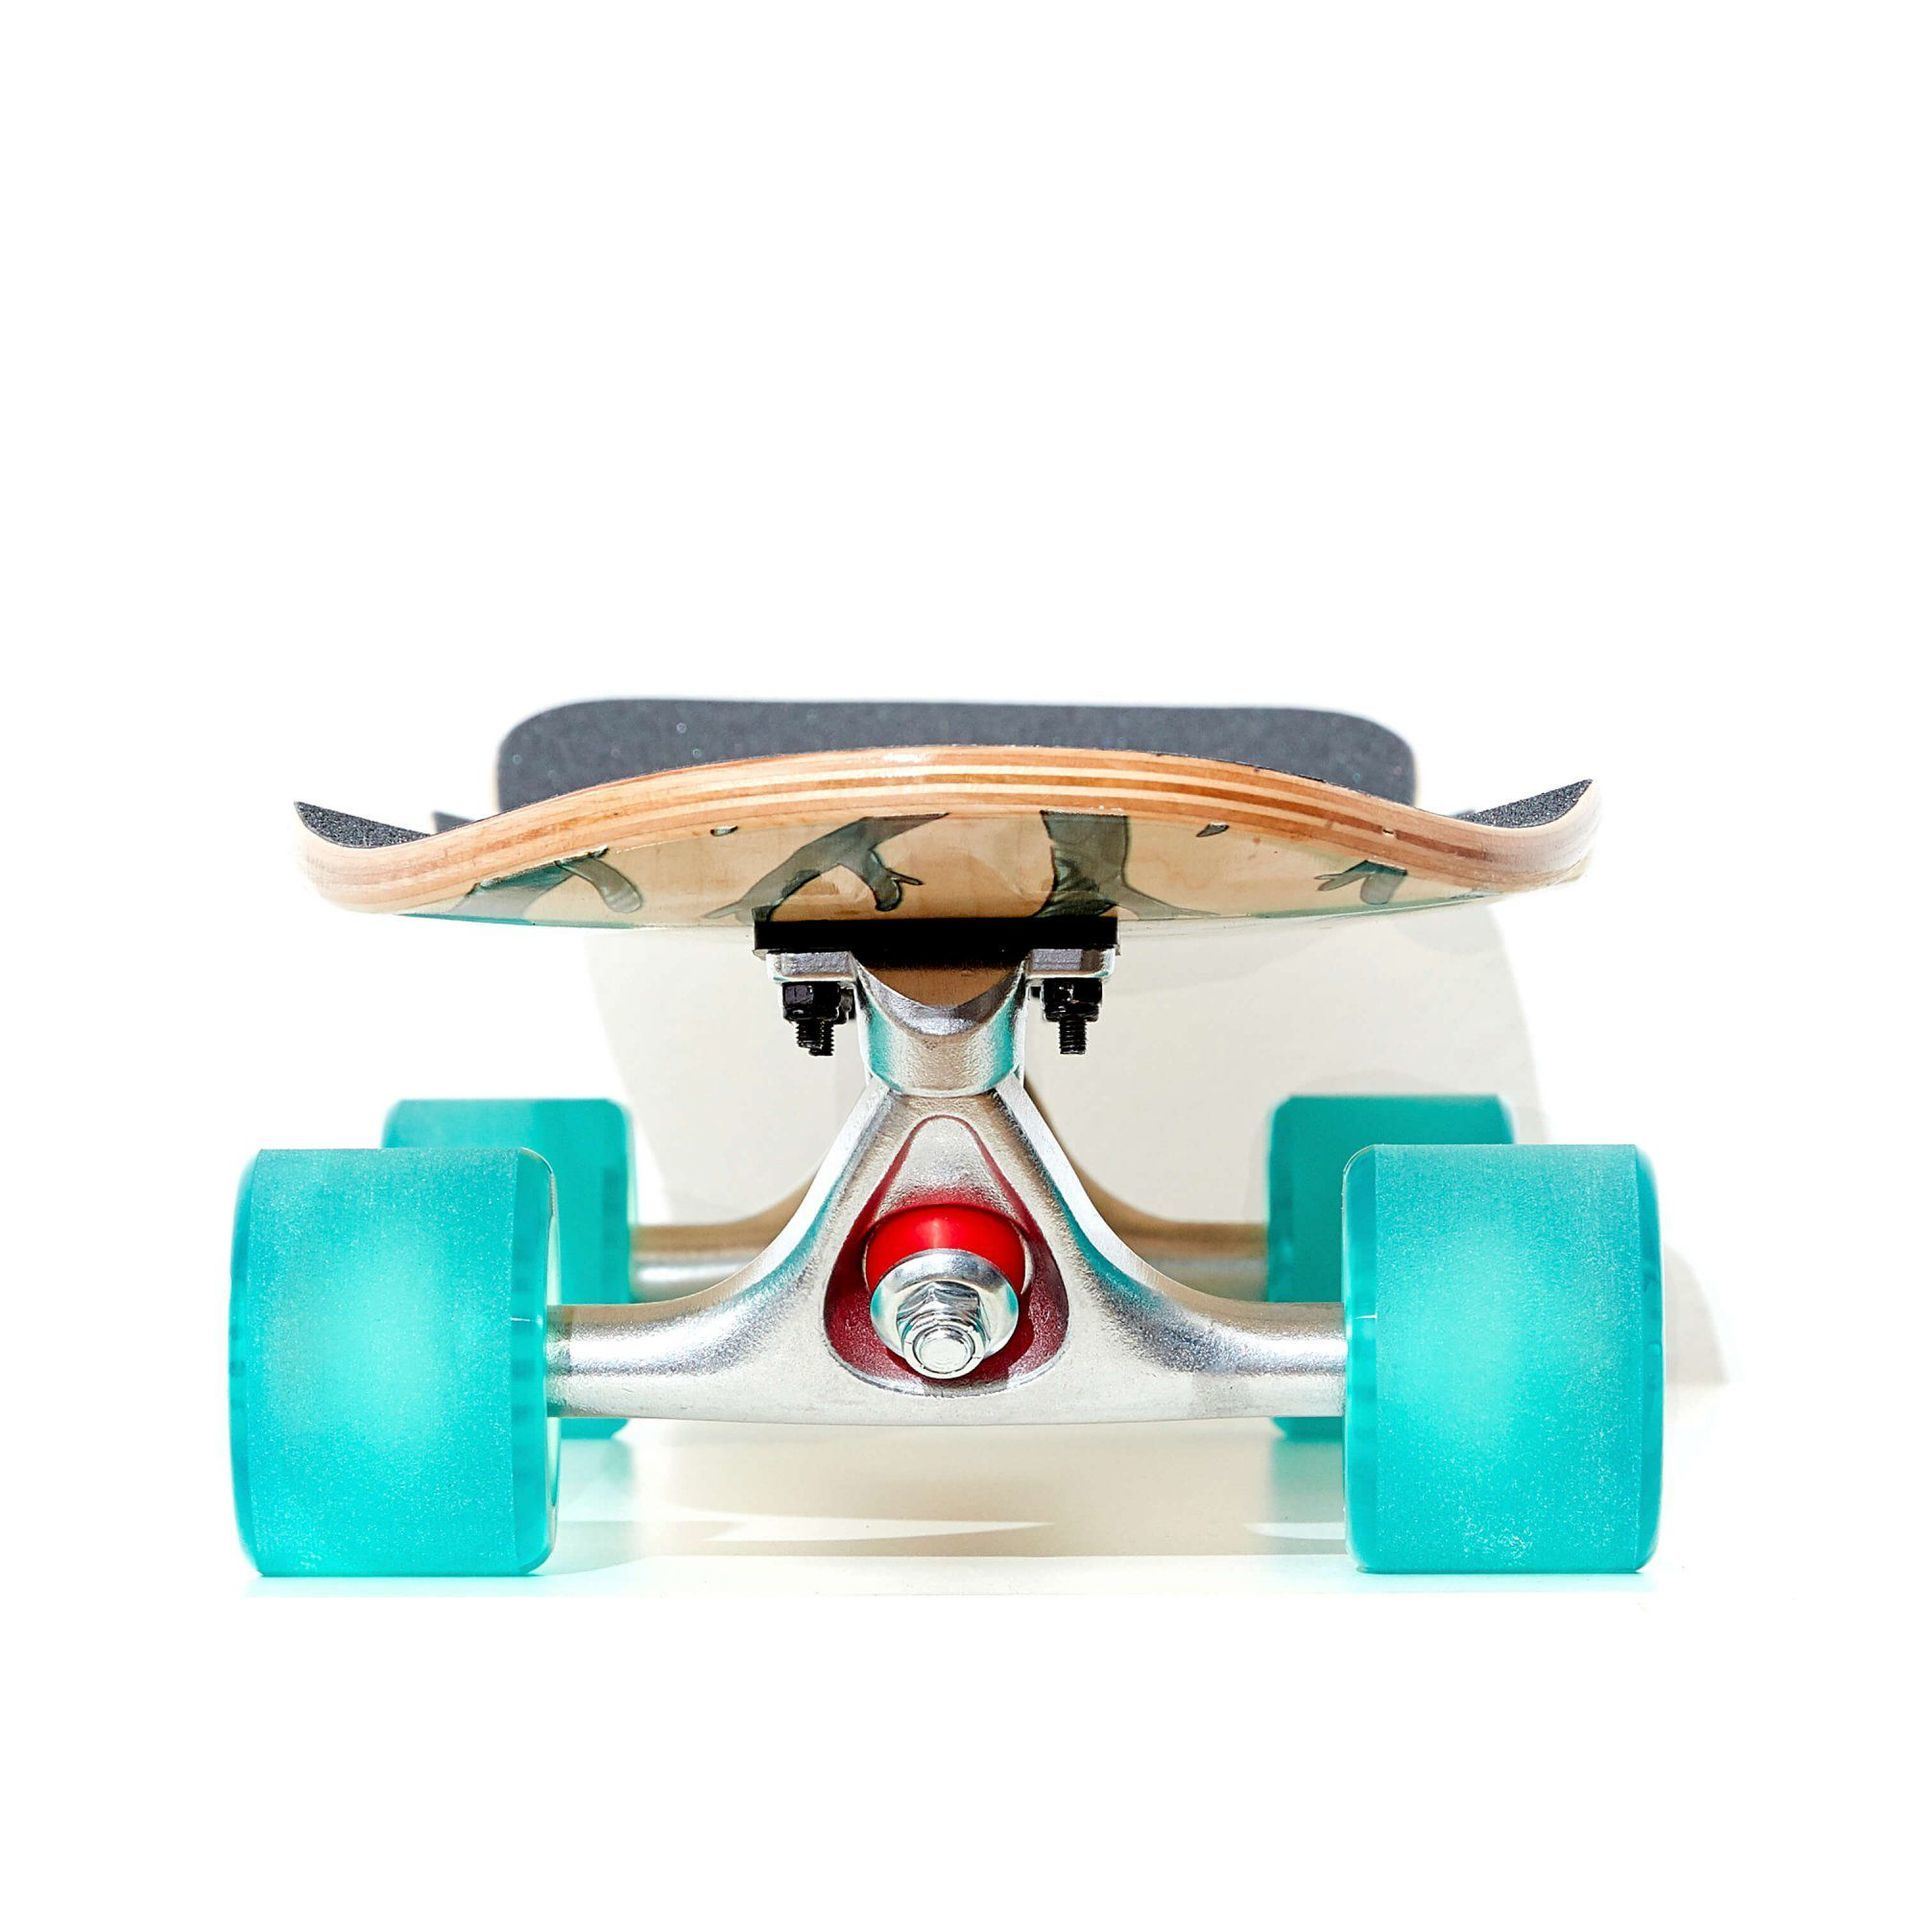 LONGBOARD FISH SKATEBOARDS CRUISER 32 SEADRAGON|SILVER|TRANSPARENT GREEN 2